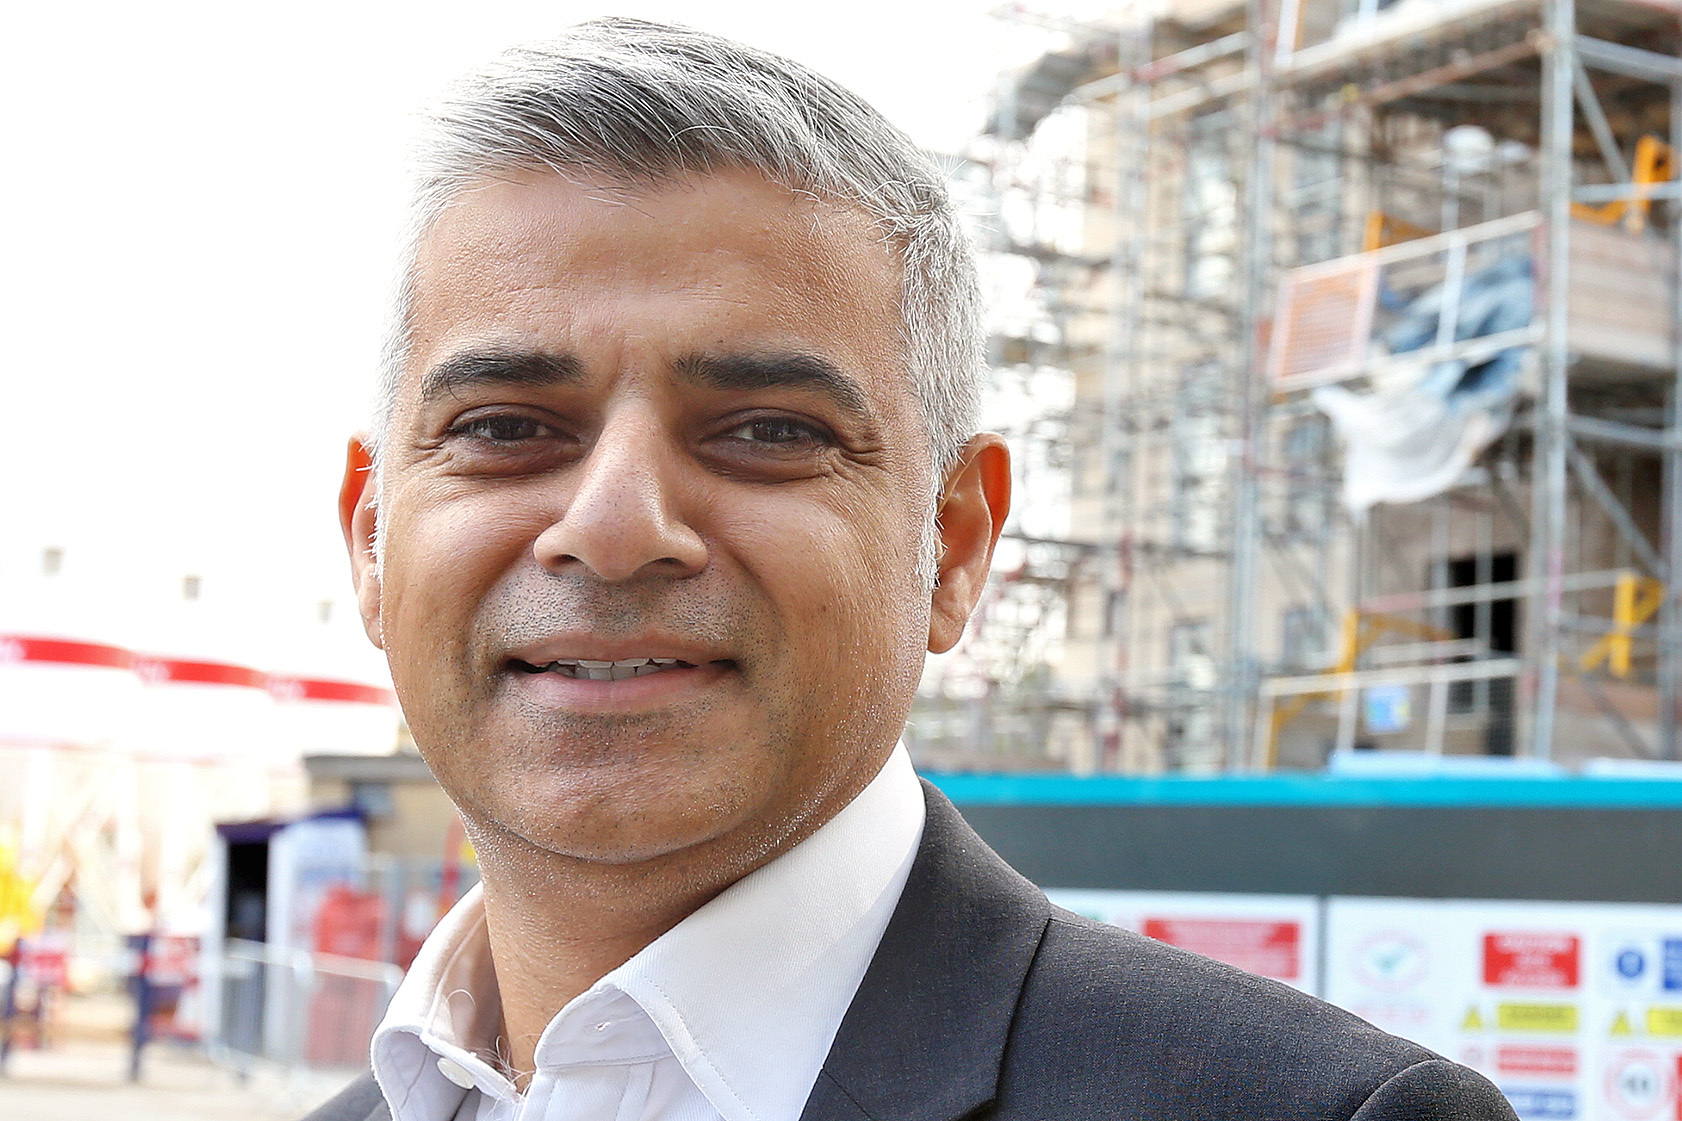 Mayor of London, Sadiq Khan